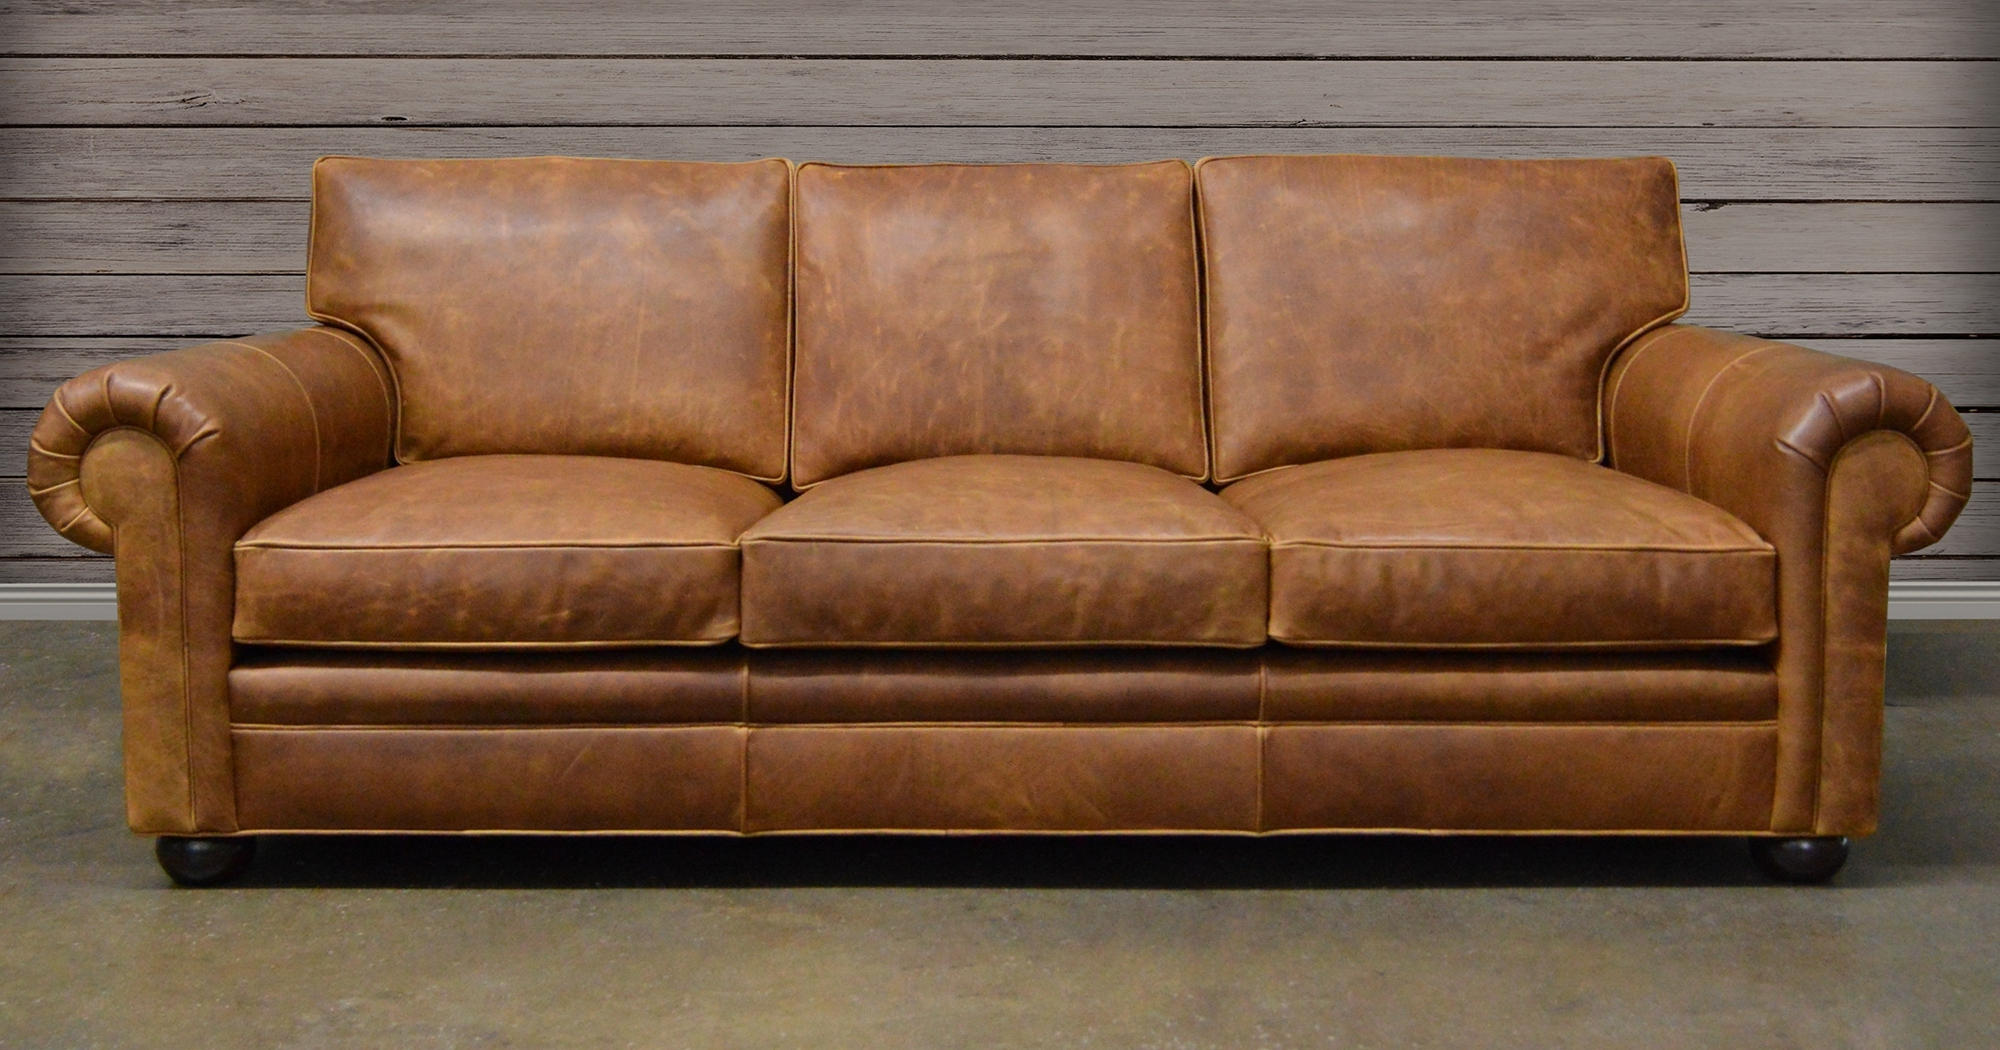 Widely Used Beautiful Full Grain Aniline Leather Sofa 2018 – Couches Ideas Inside Aniline Leather Sofas (View 14 of 15)